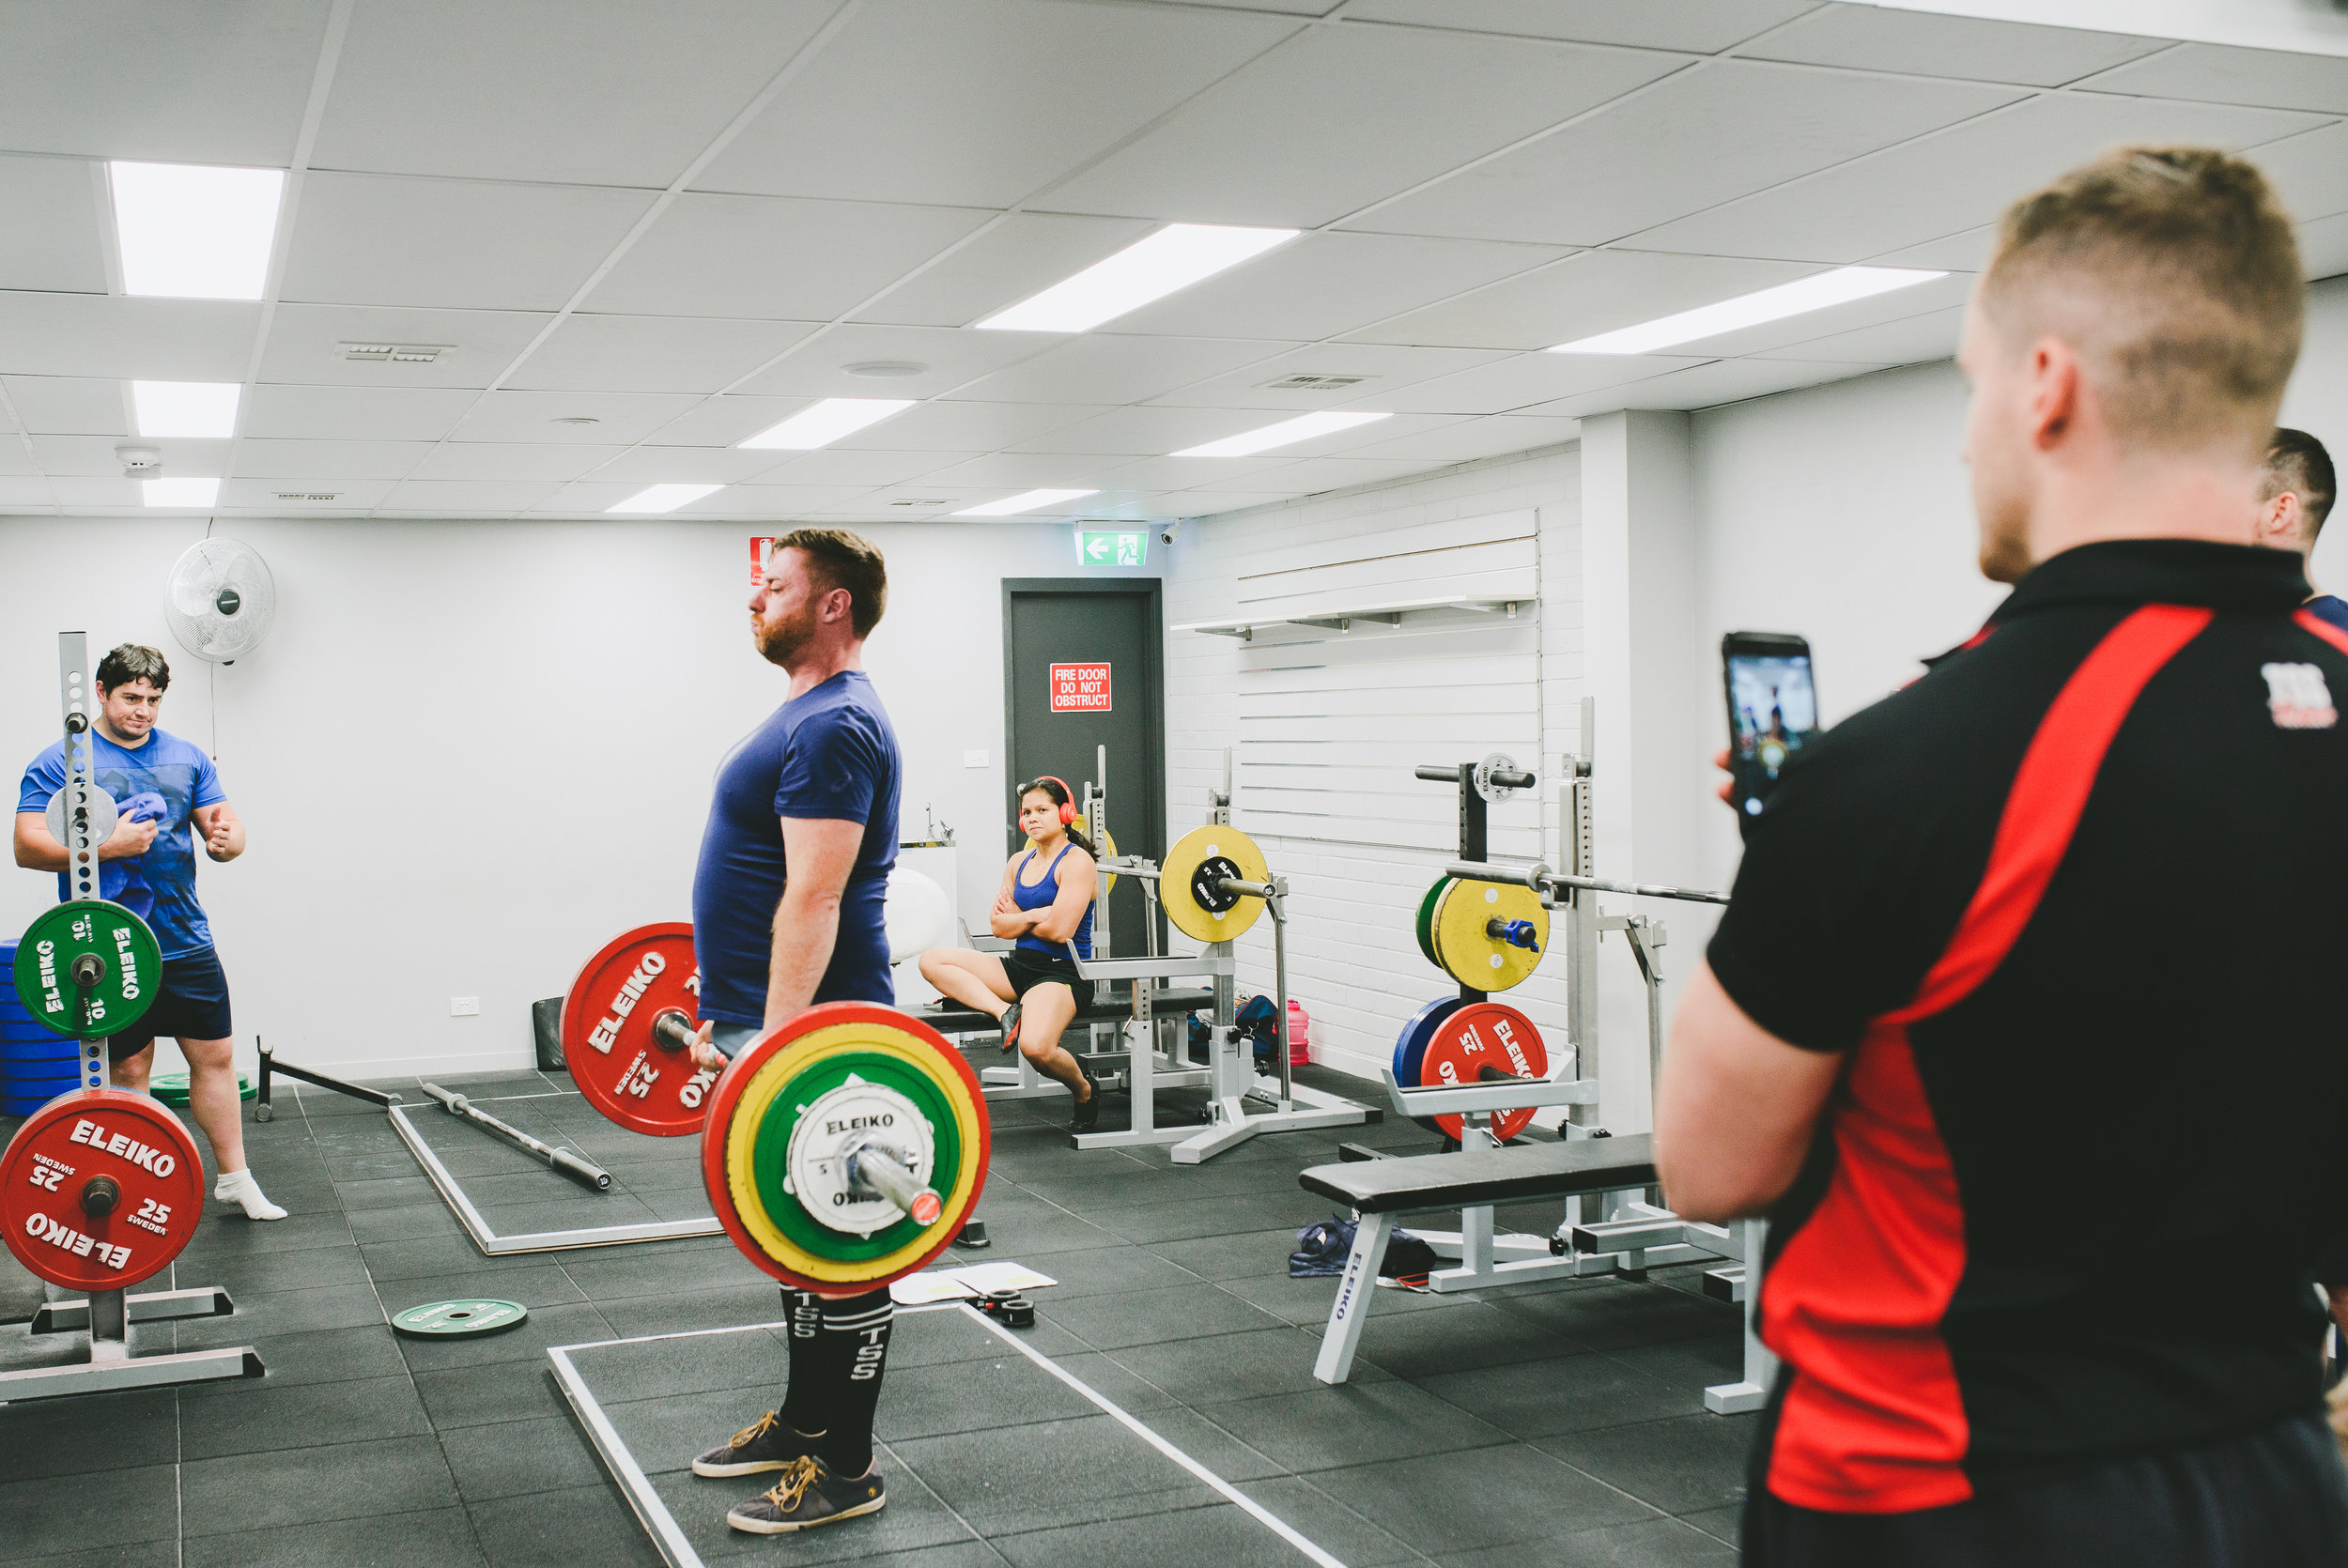 12 Week Course - Don't mind training in a group, want to work on your technique, and learn how to effectively program long-term, join our 12 week lifting course!1 night $350, 2 nights $490